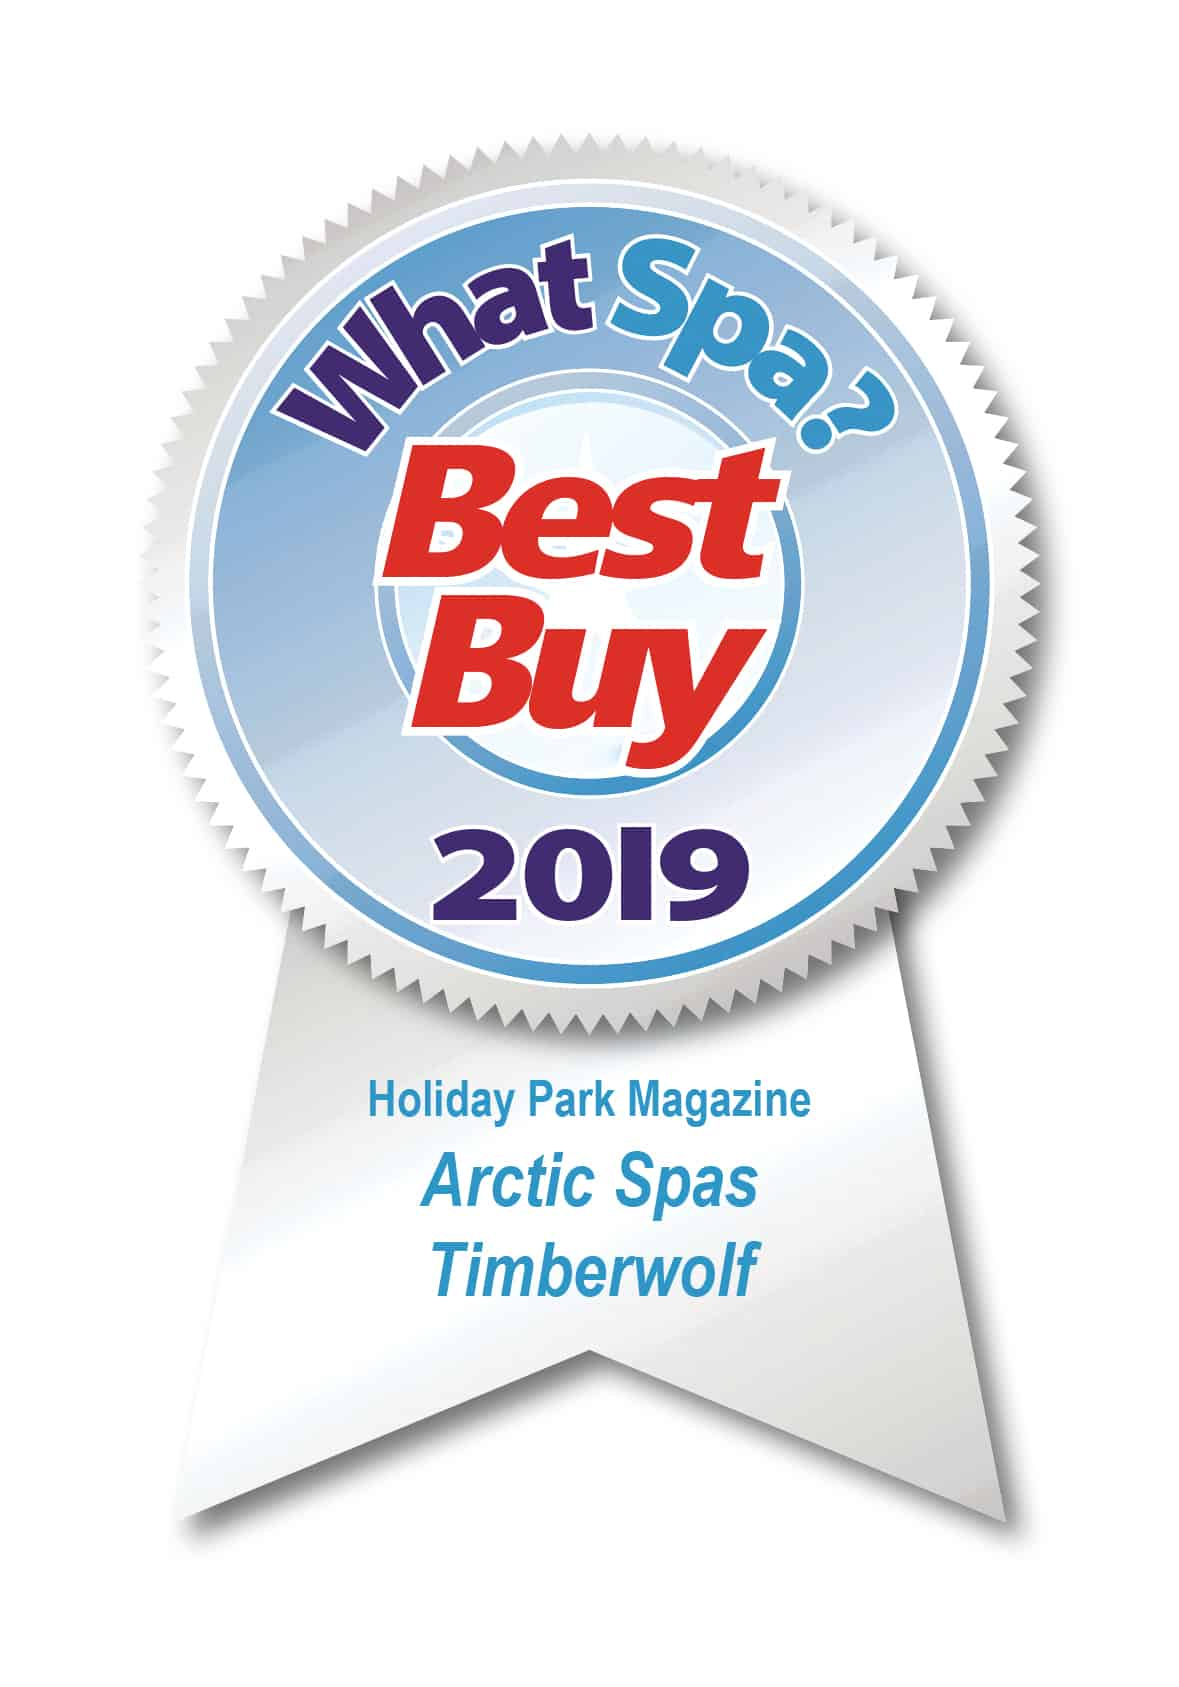 Arctic Spas UK Best Buy 2019 Timberwolf model